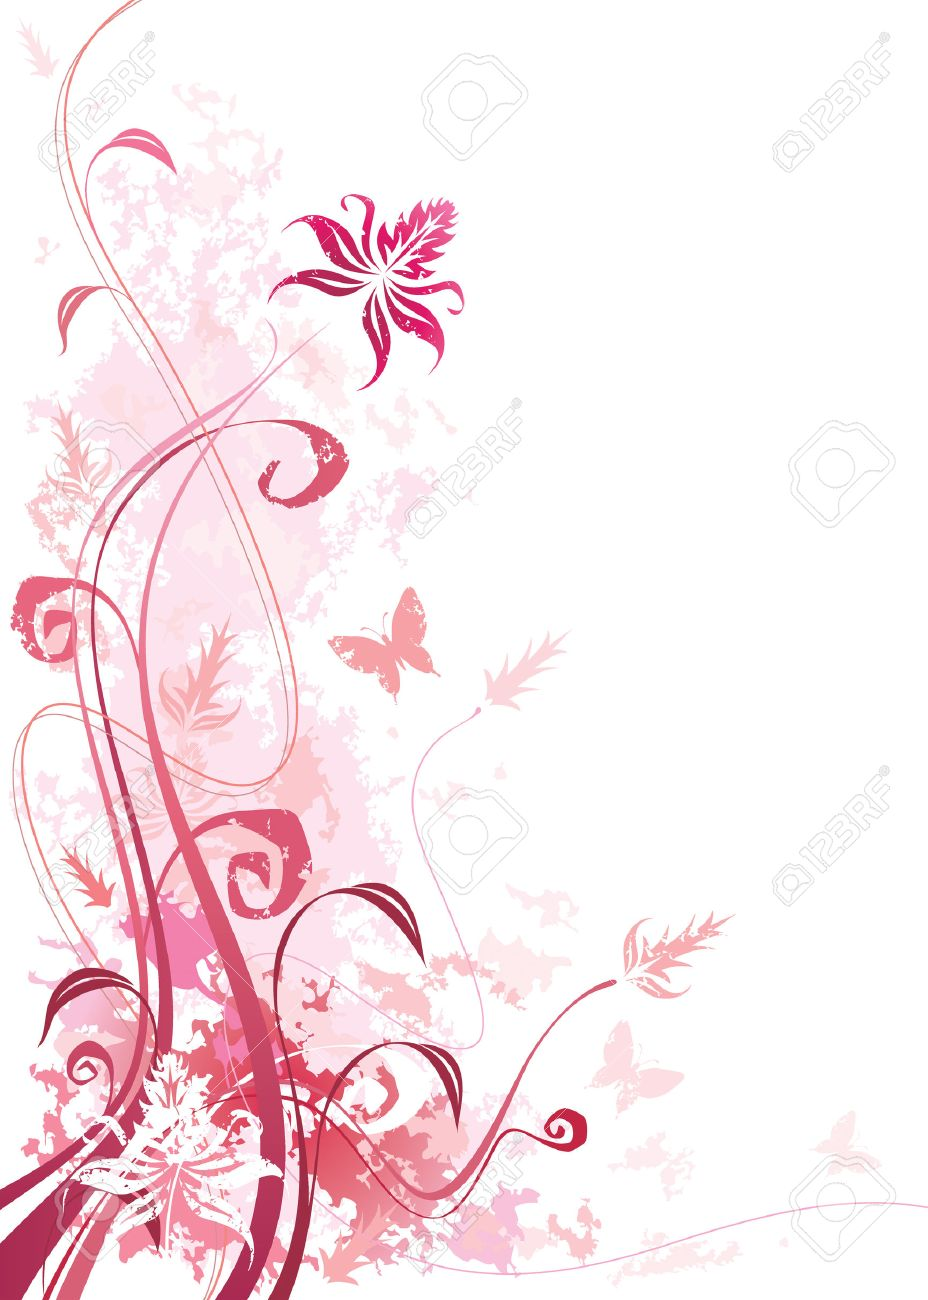 Pink Color Floral With Grunge Effects Vector Illustration Layered